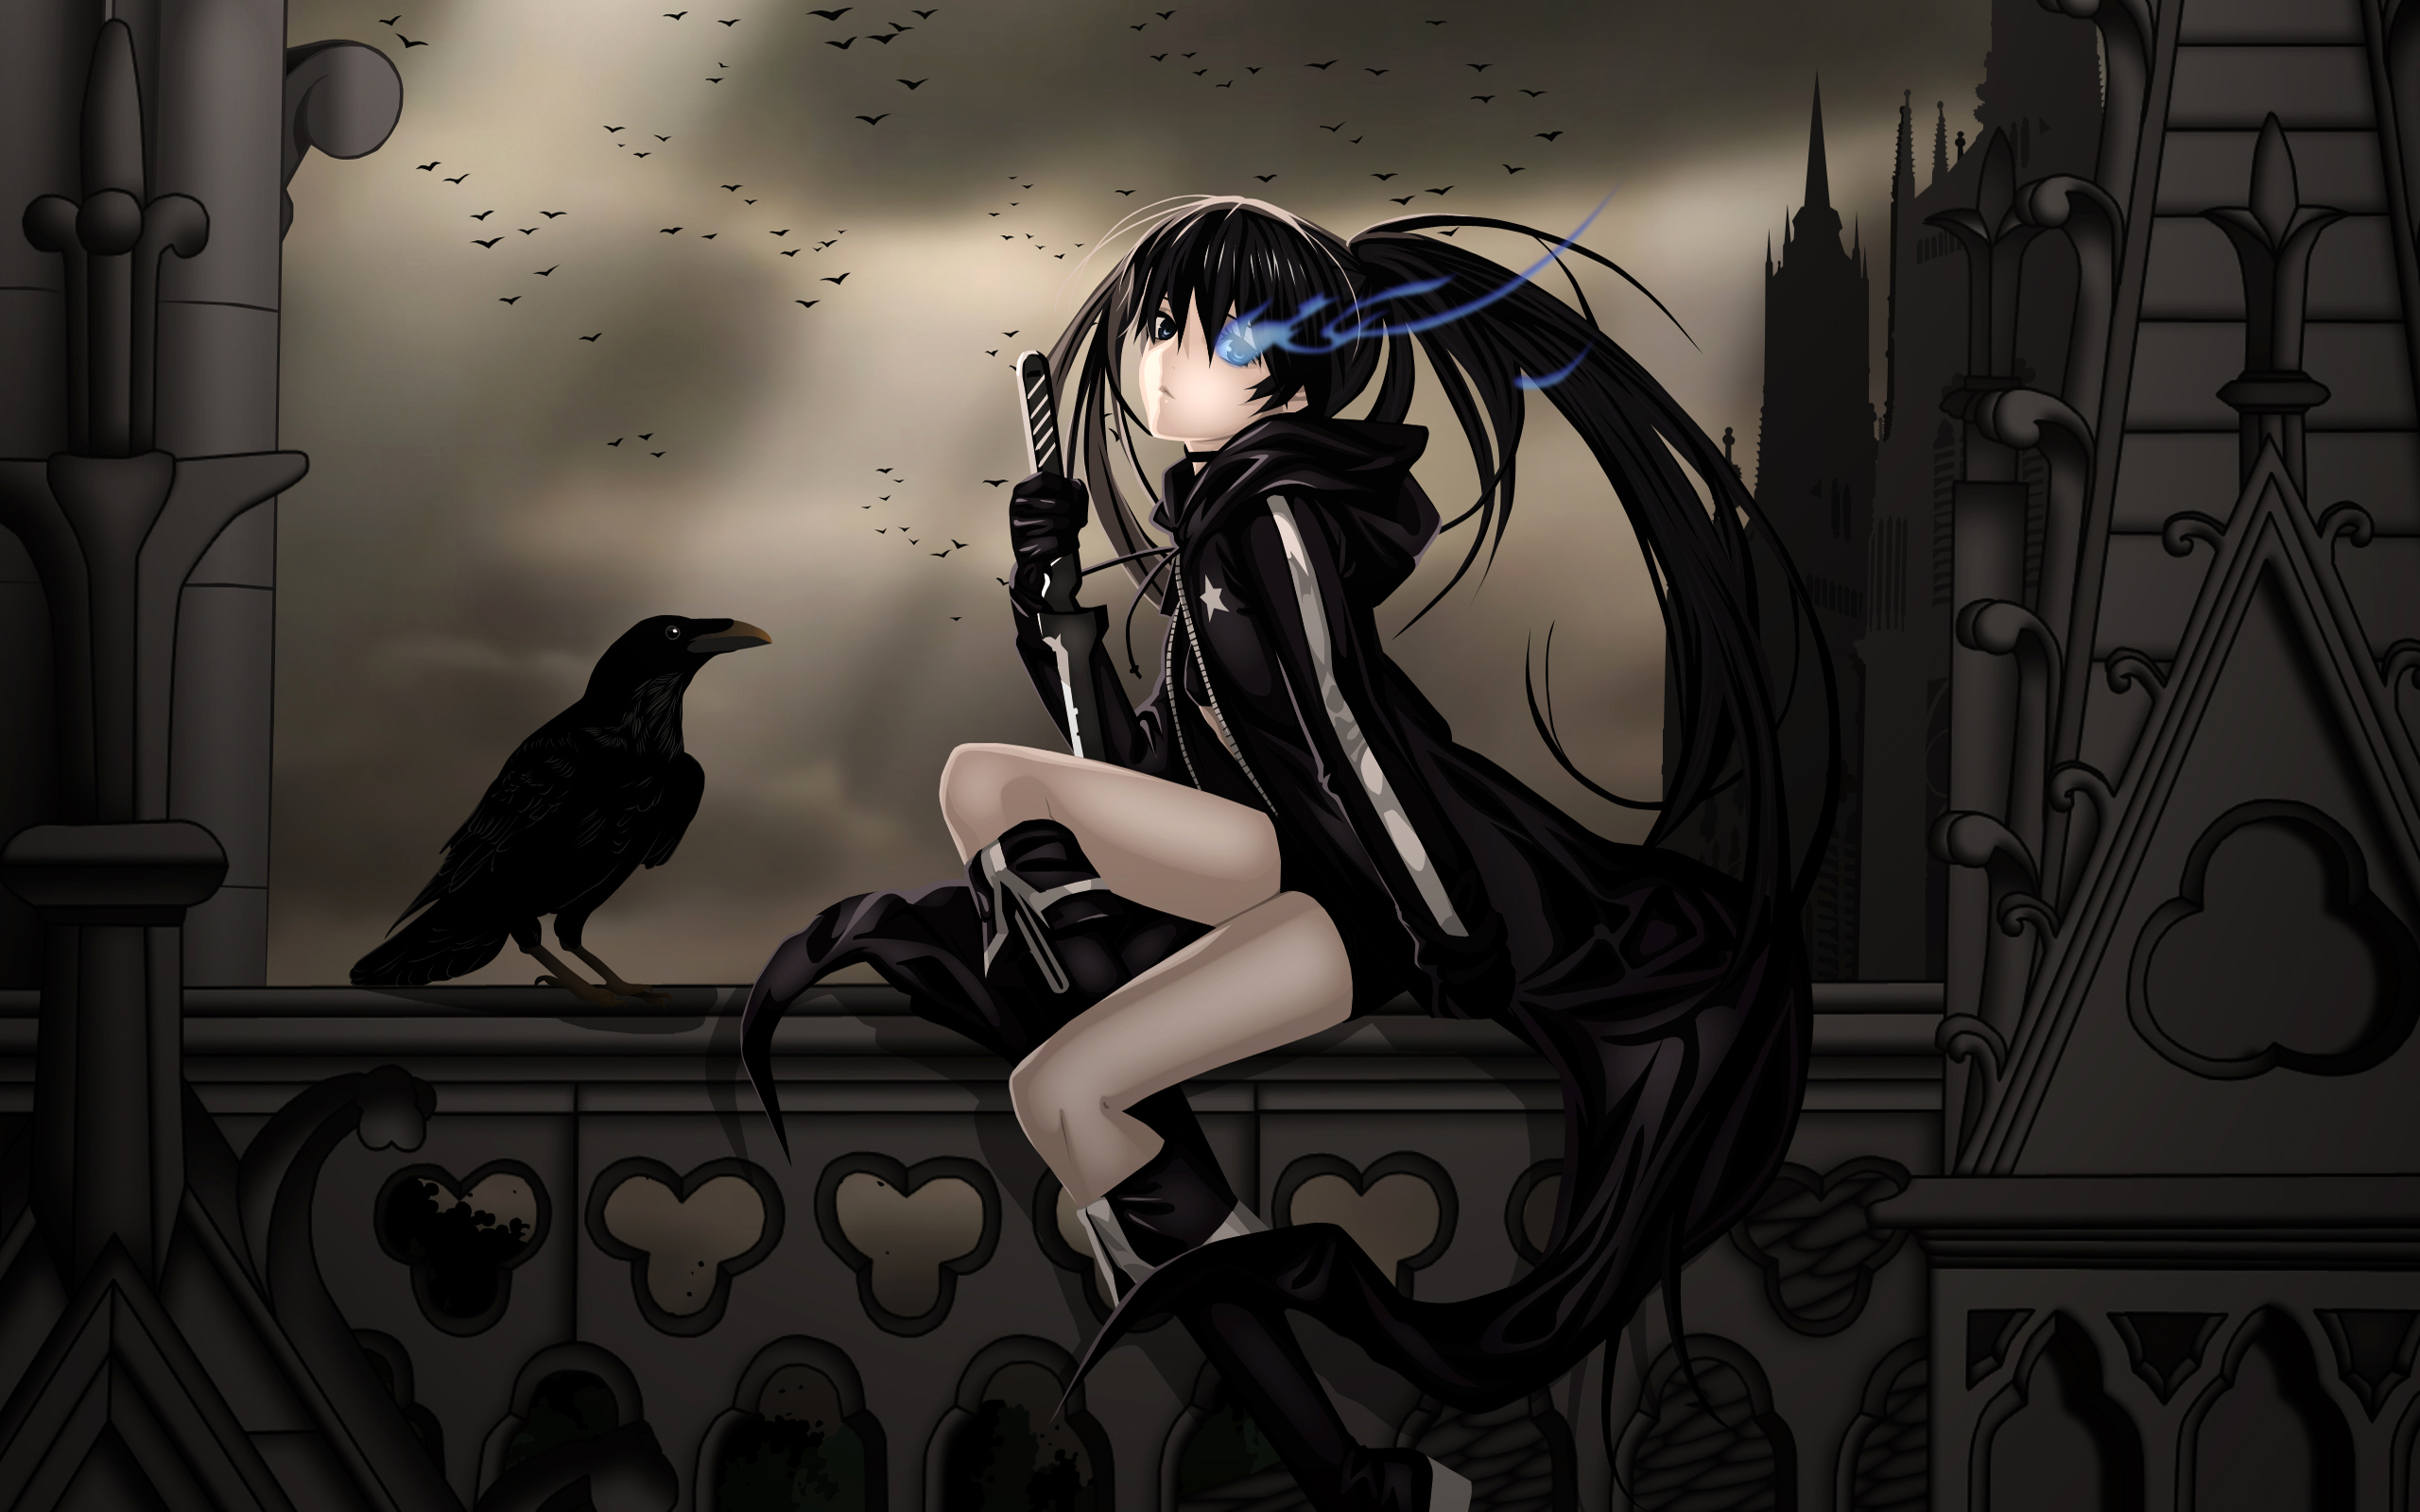 Anime - Black Rock Shooter  - Fun - Crazy - Bleu   - Oeil Fond d'écran